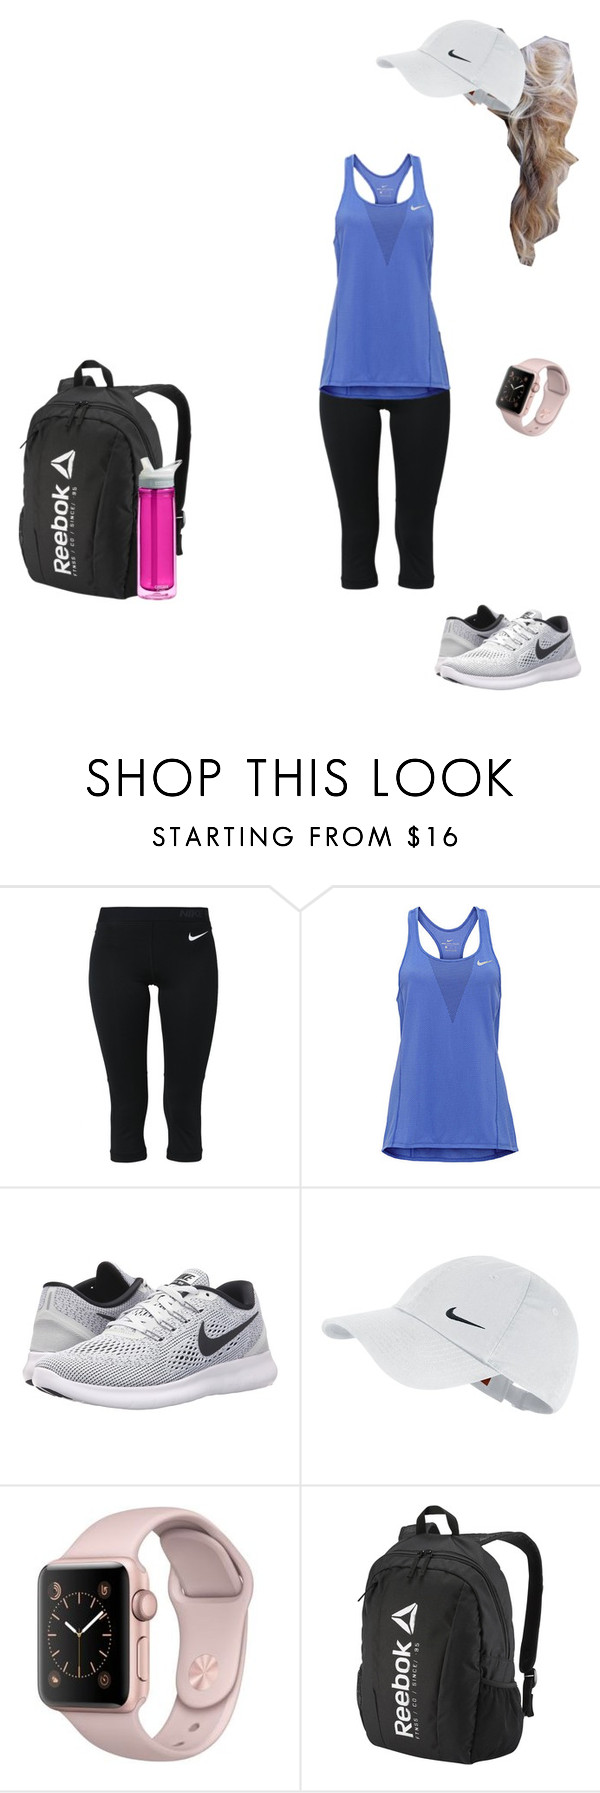 """""""Gym workout today"""" by nycityprincess ❤ liked on Polyvore featuring NIKE, Reebok and CamelBak"""